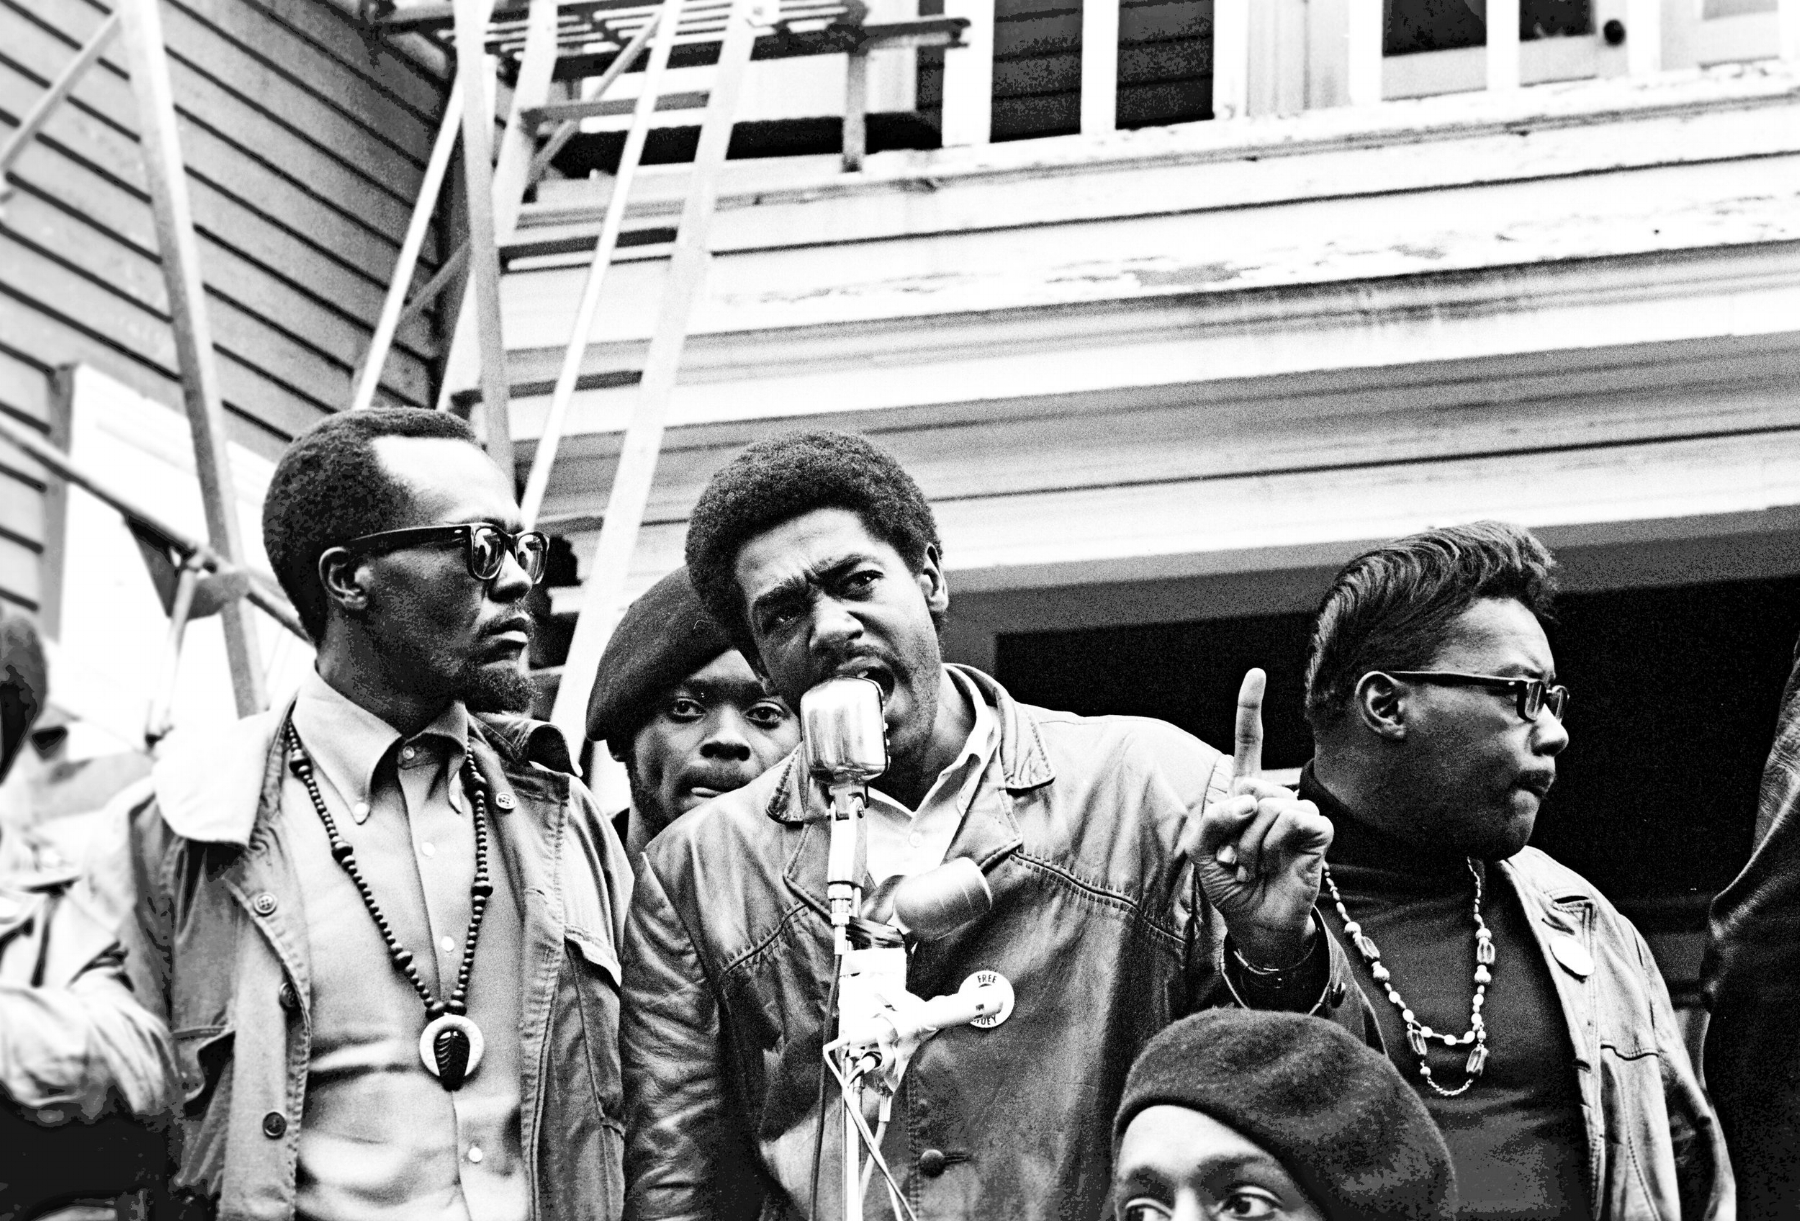 Image Above: Bobby Seale speaks at a Free Huey rally in DeFremery Park, Oakland, 1968. Left of Seale is Bill Brent, who later went to Cuba. Right is Wilford Holiday, known as Captain Crutch.All images: Stephen Shames, Courtesy of Steven Kasher Gallery